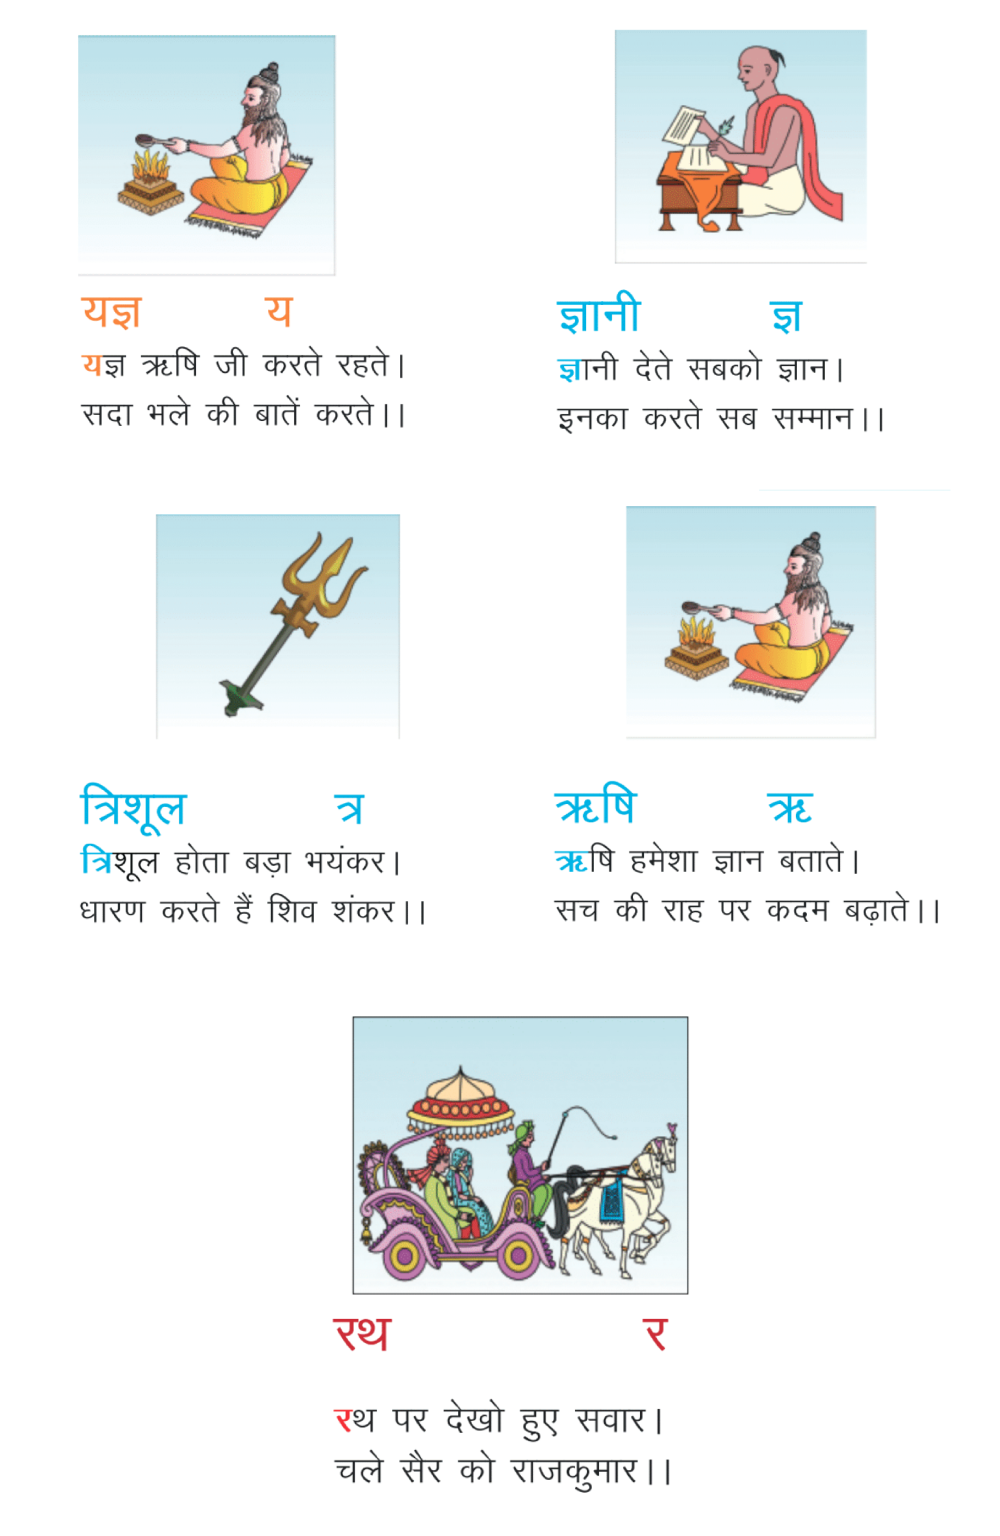 BJP government in Rajasthan rewrote school textbooks to mirror the